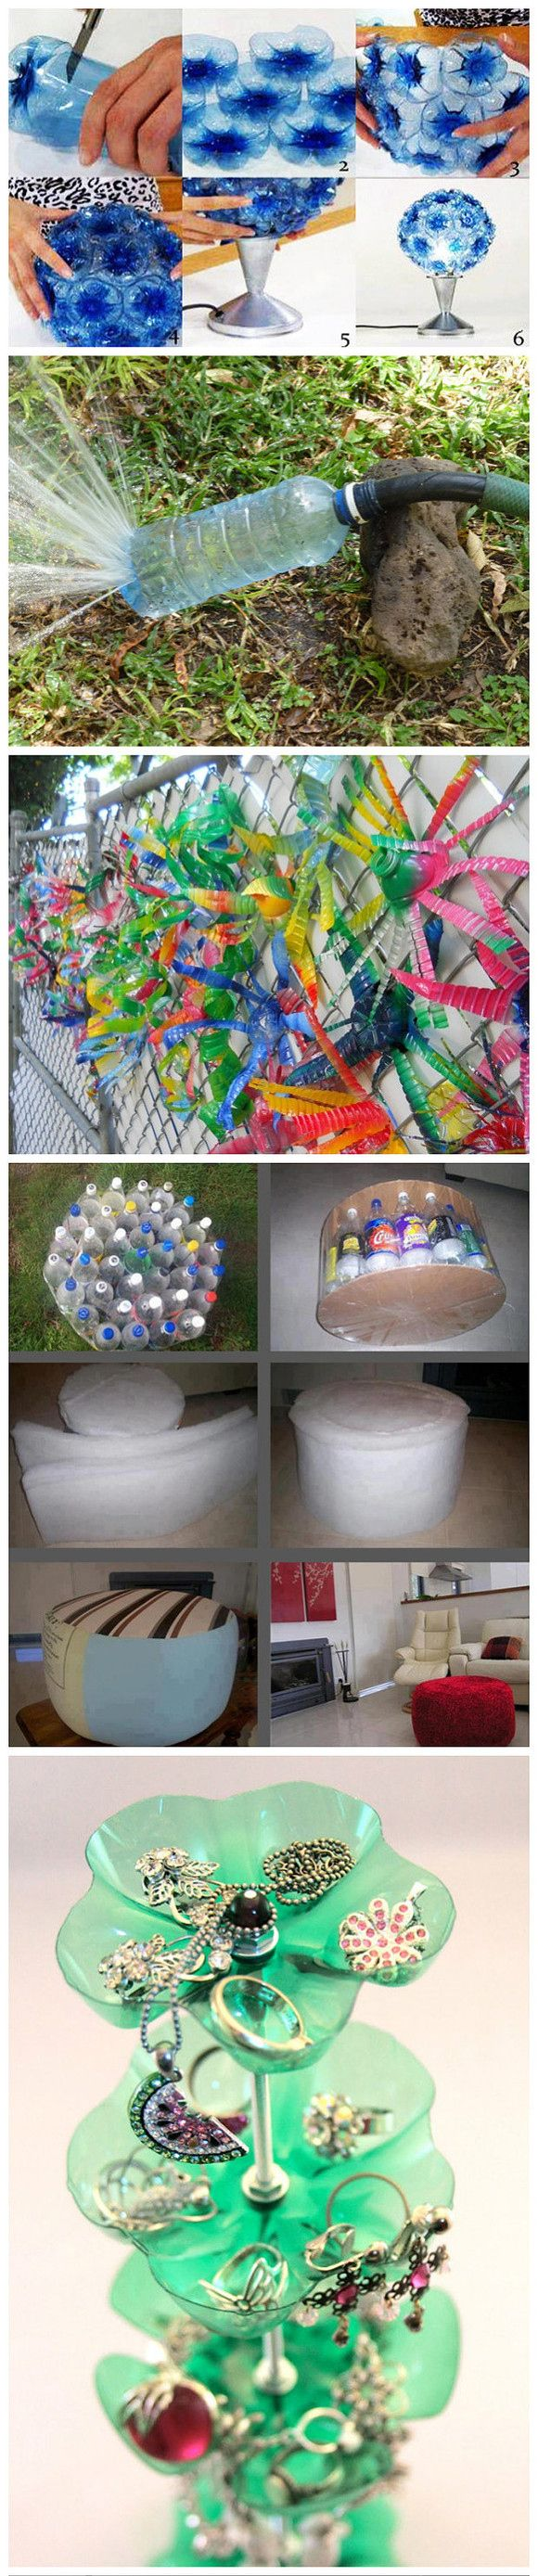 1179 best images about plastic bottles crafts and for Creativity with plastic bottles